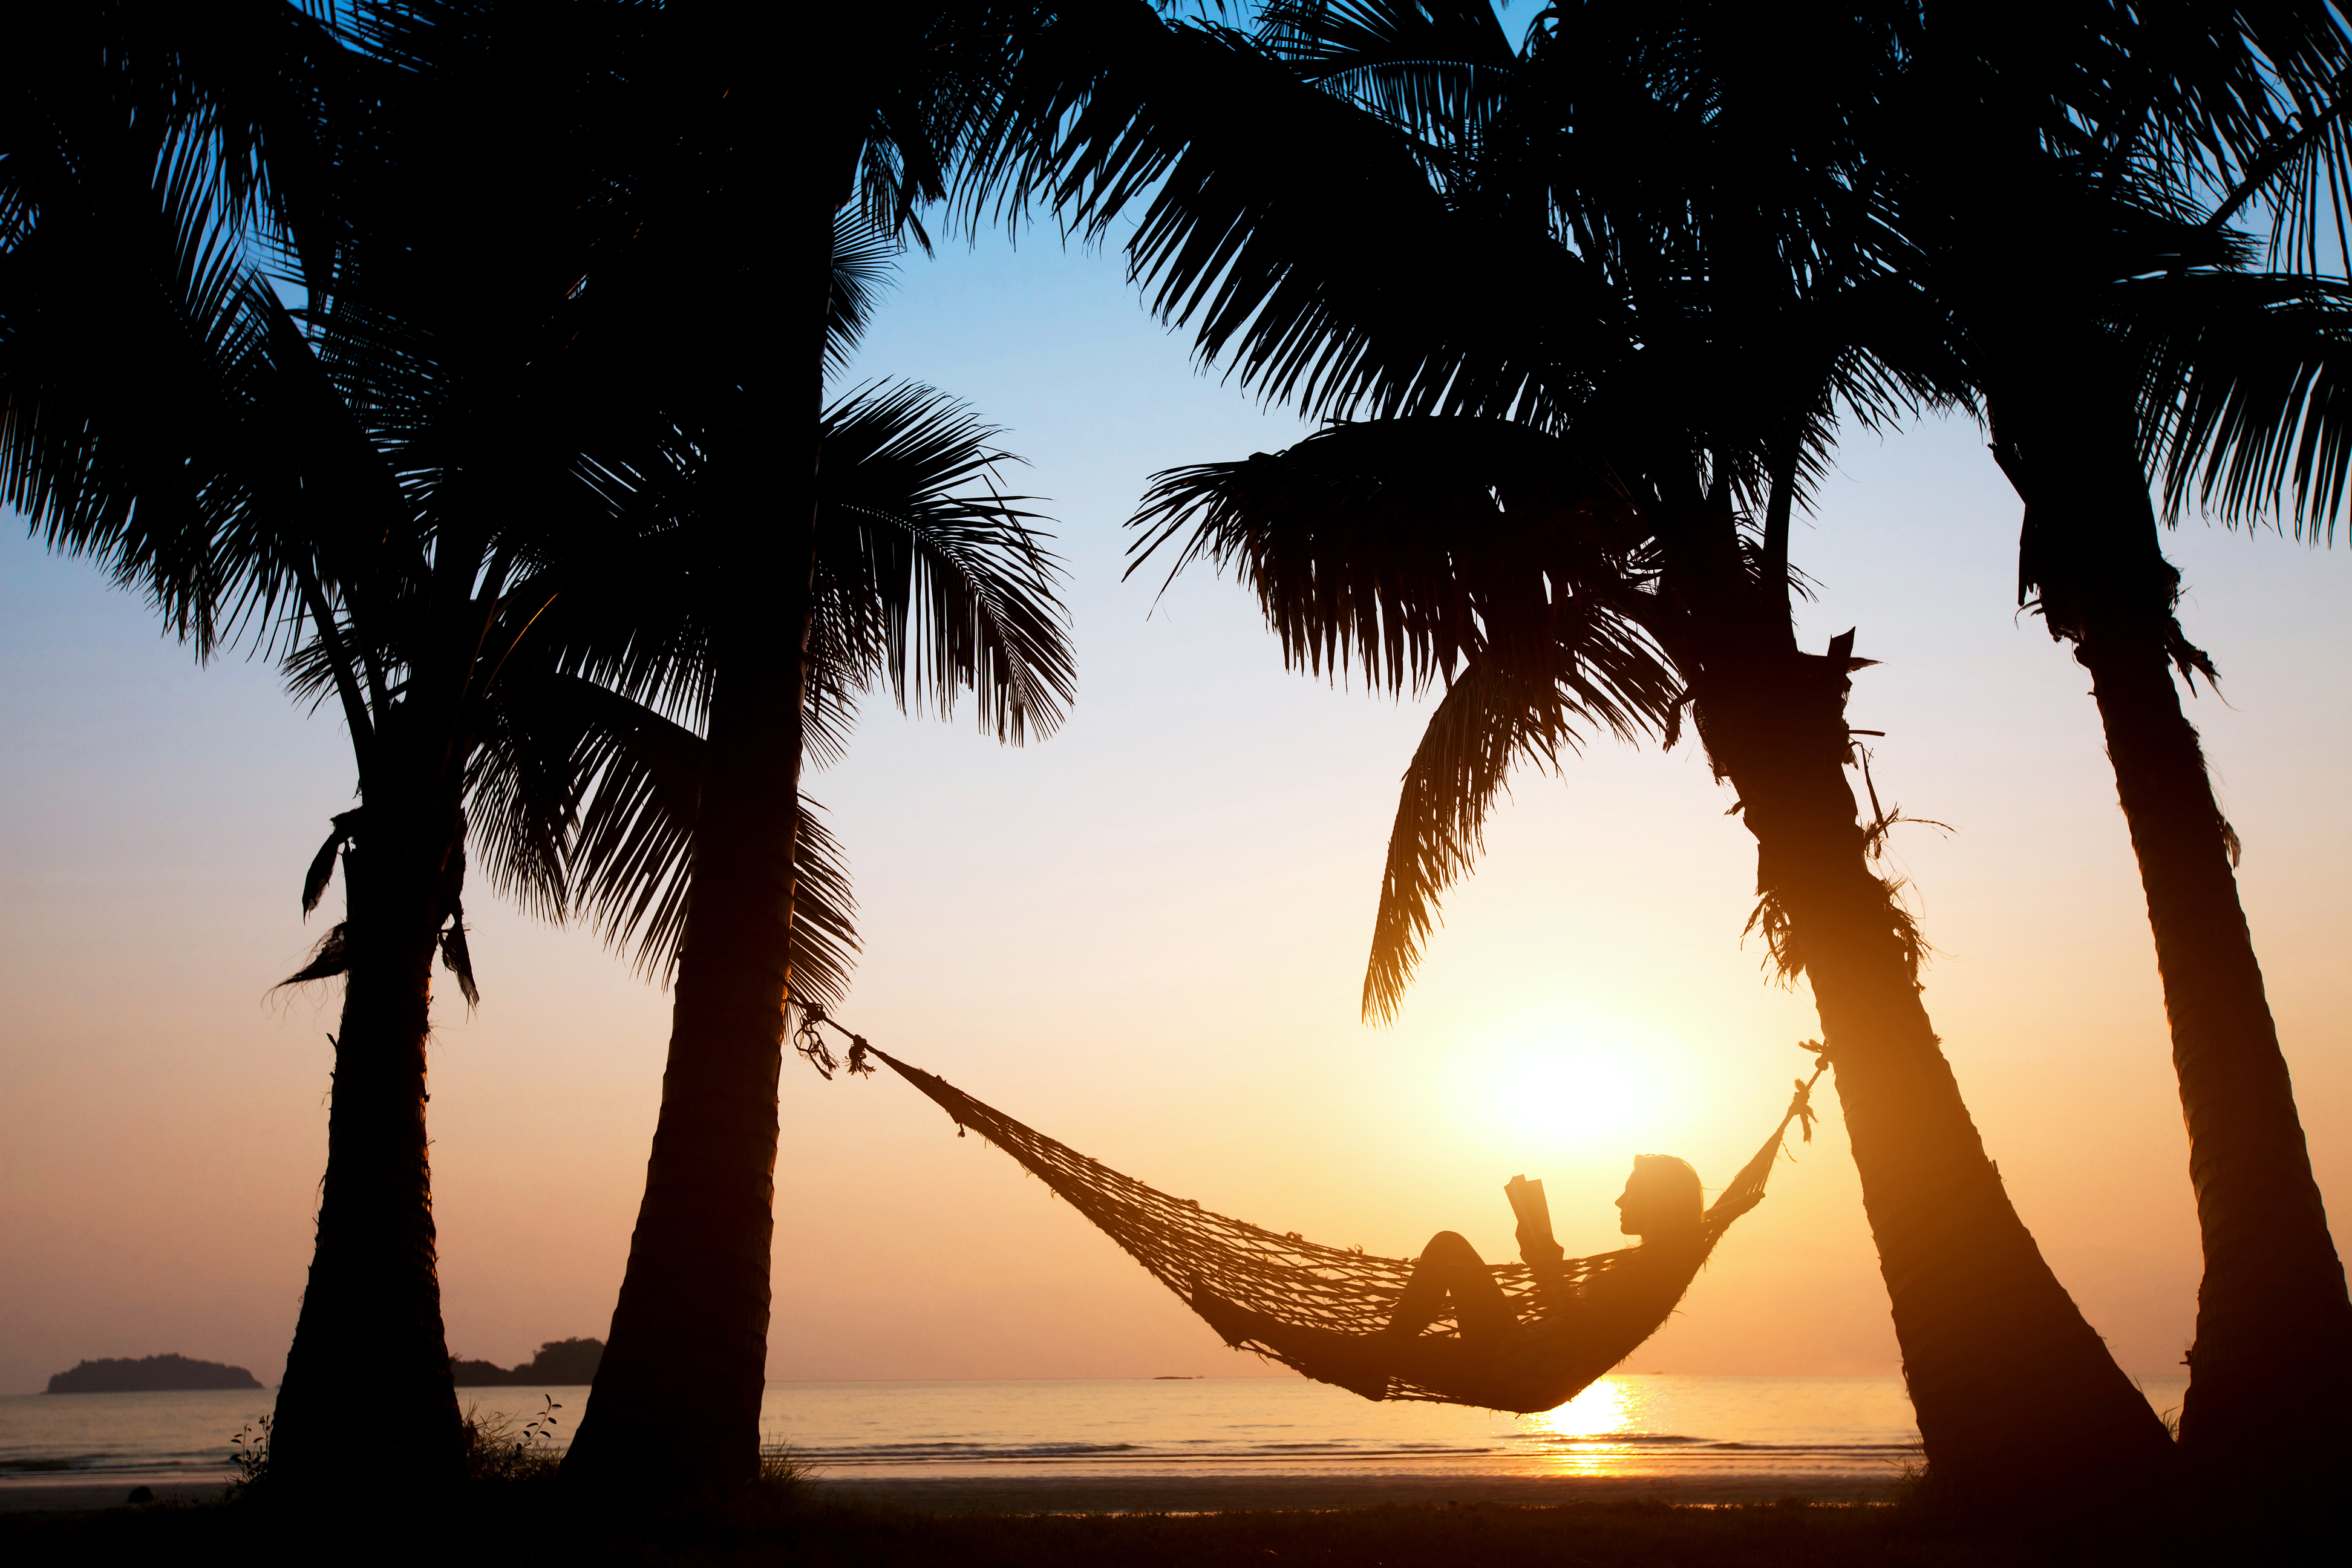 5 ways for Entrepreneurs to unwind and relax